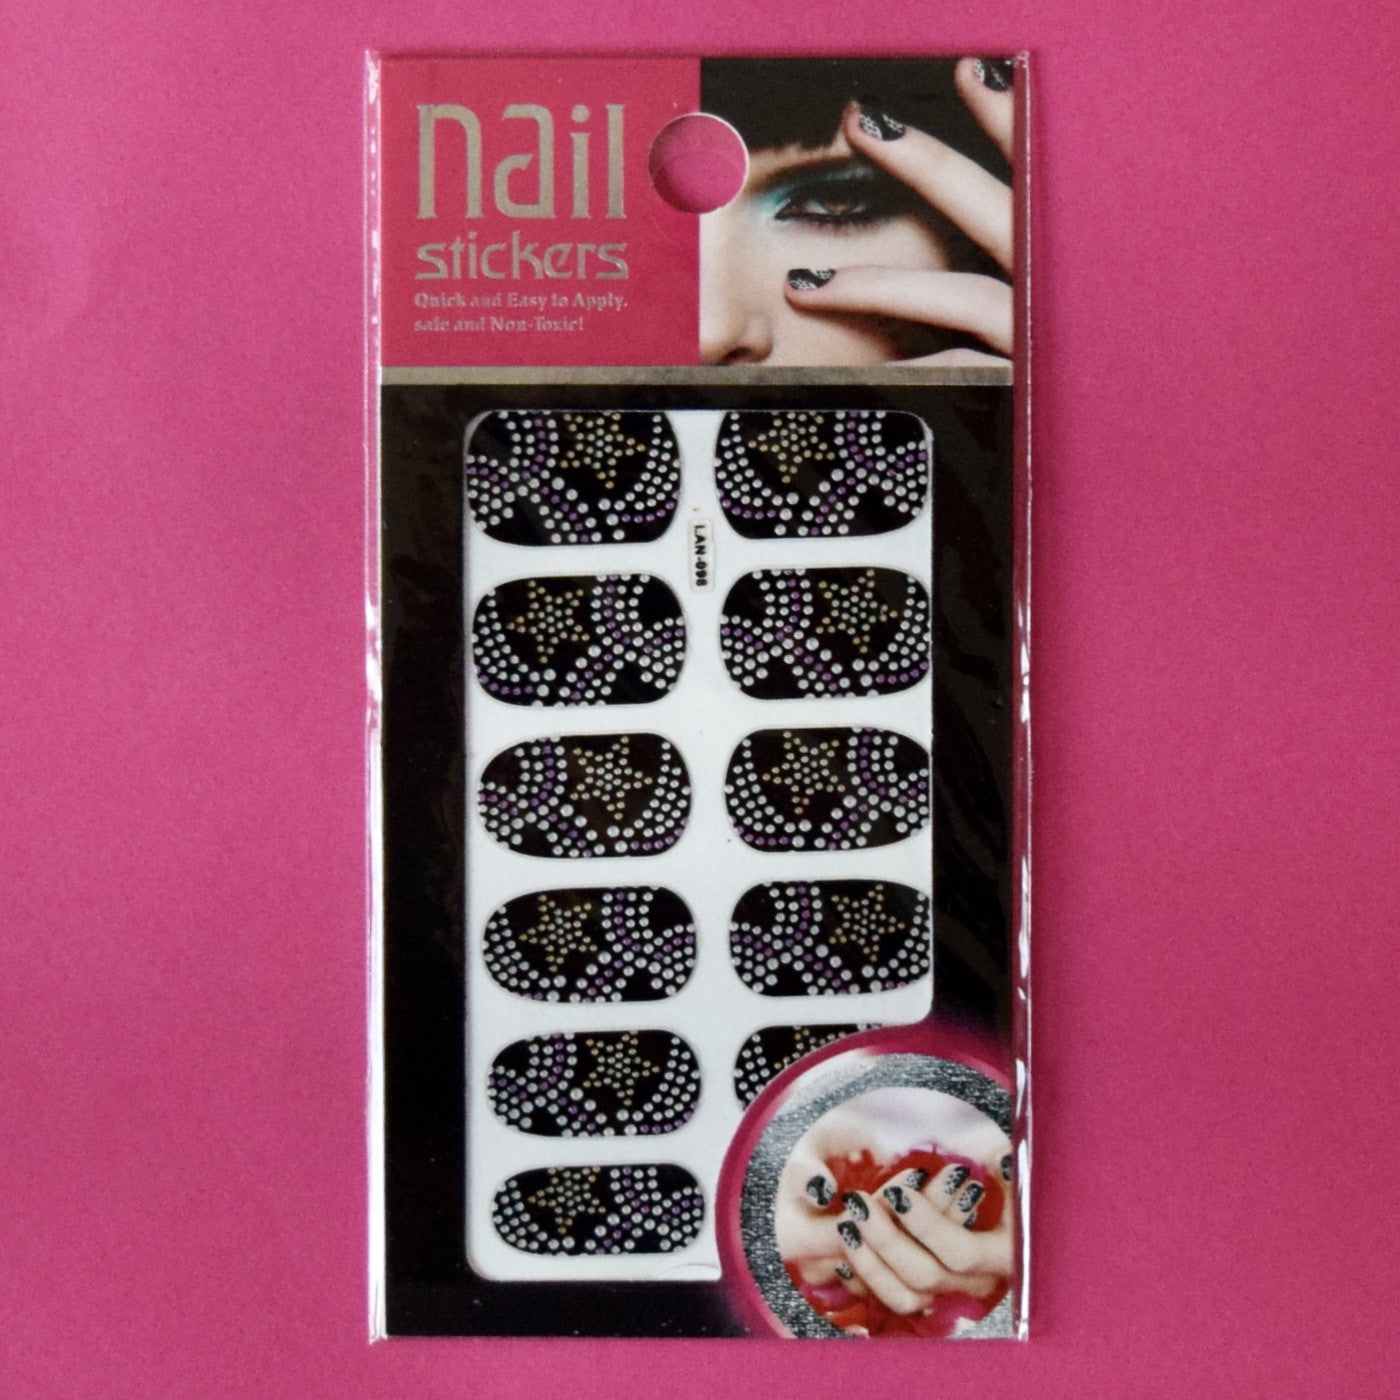 Full nail stickers .jpg